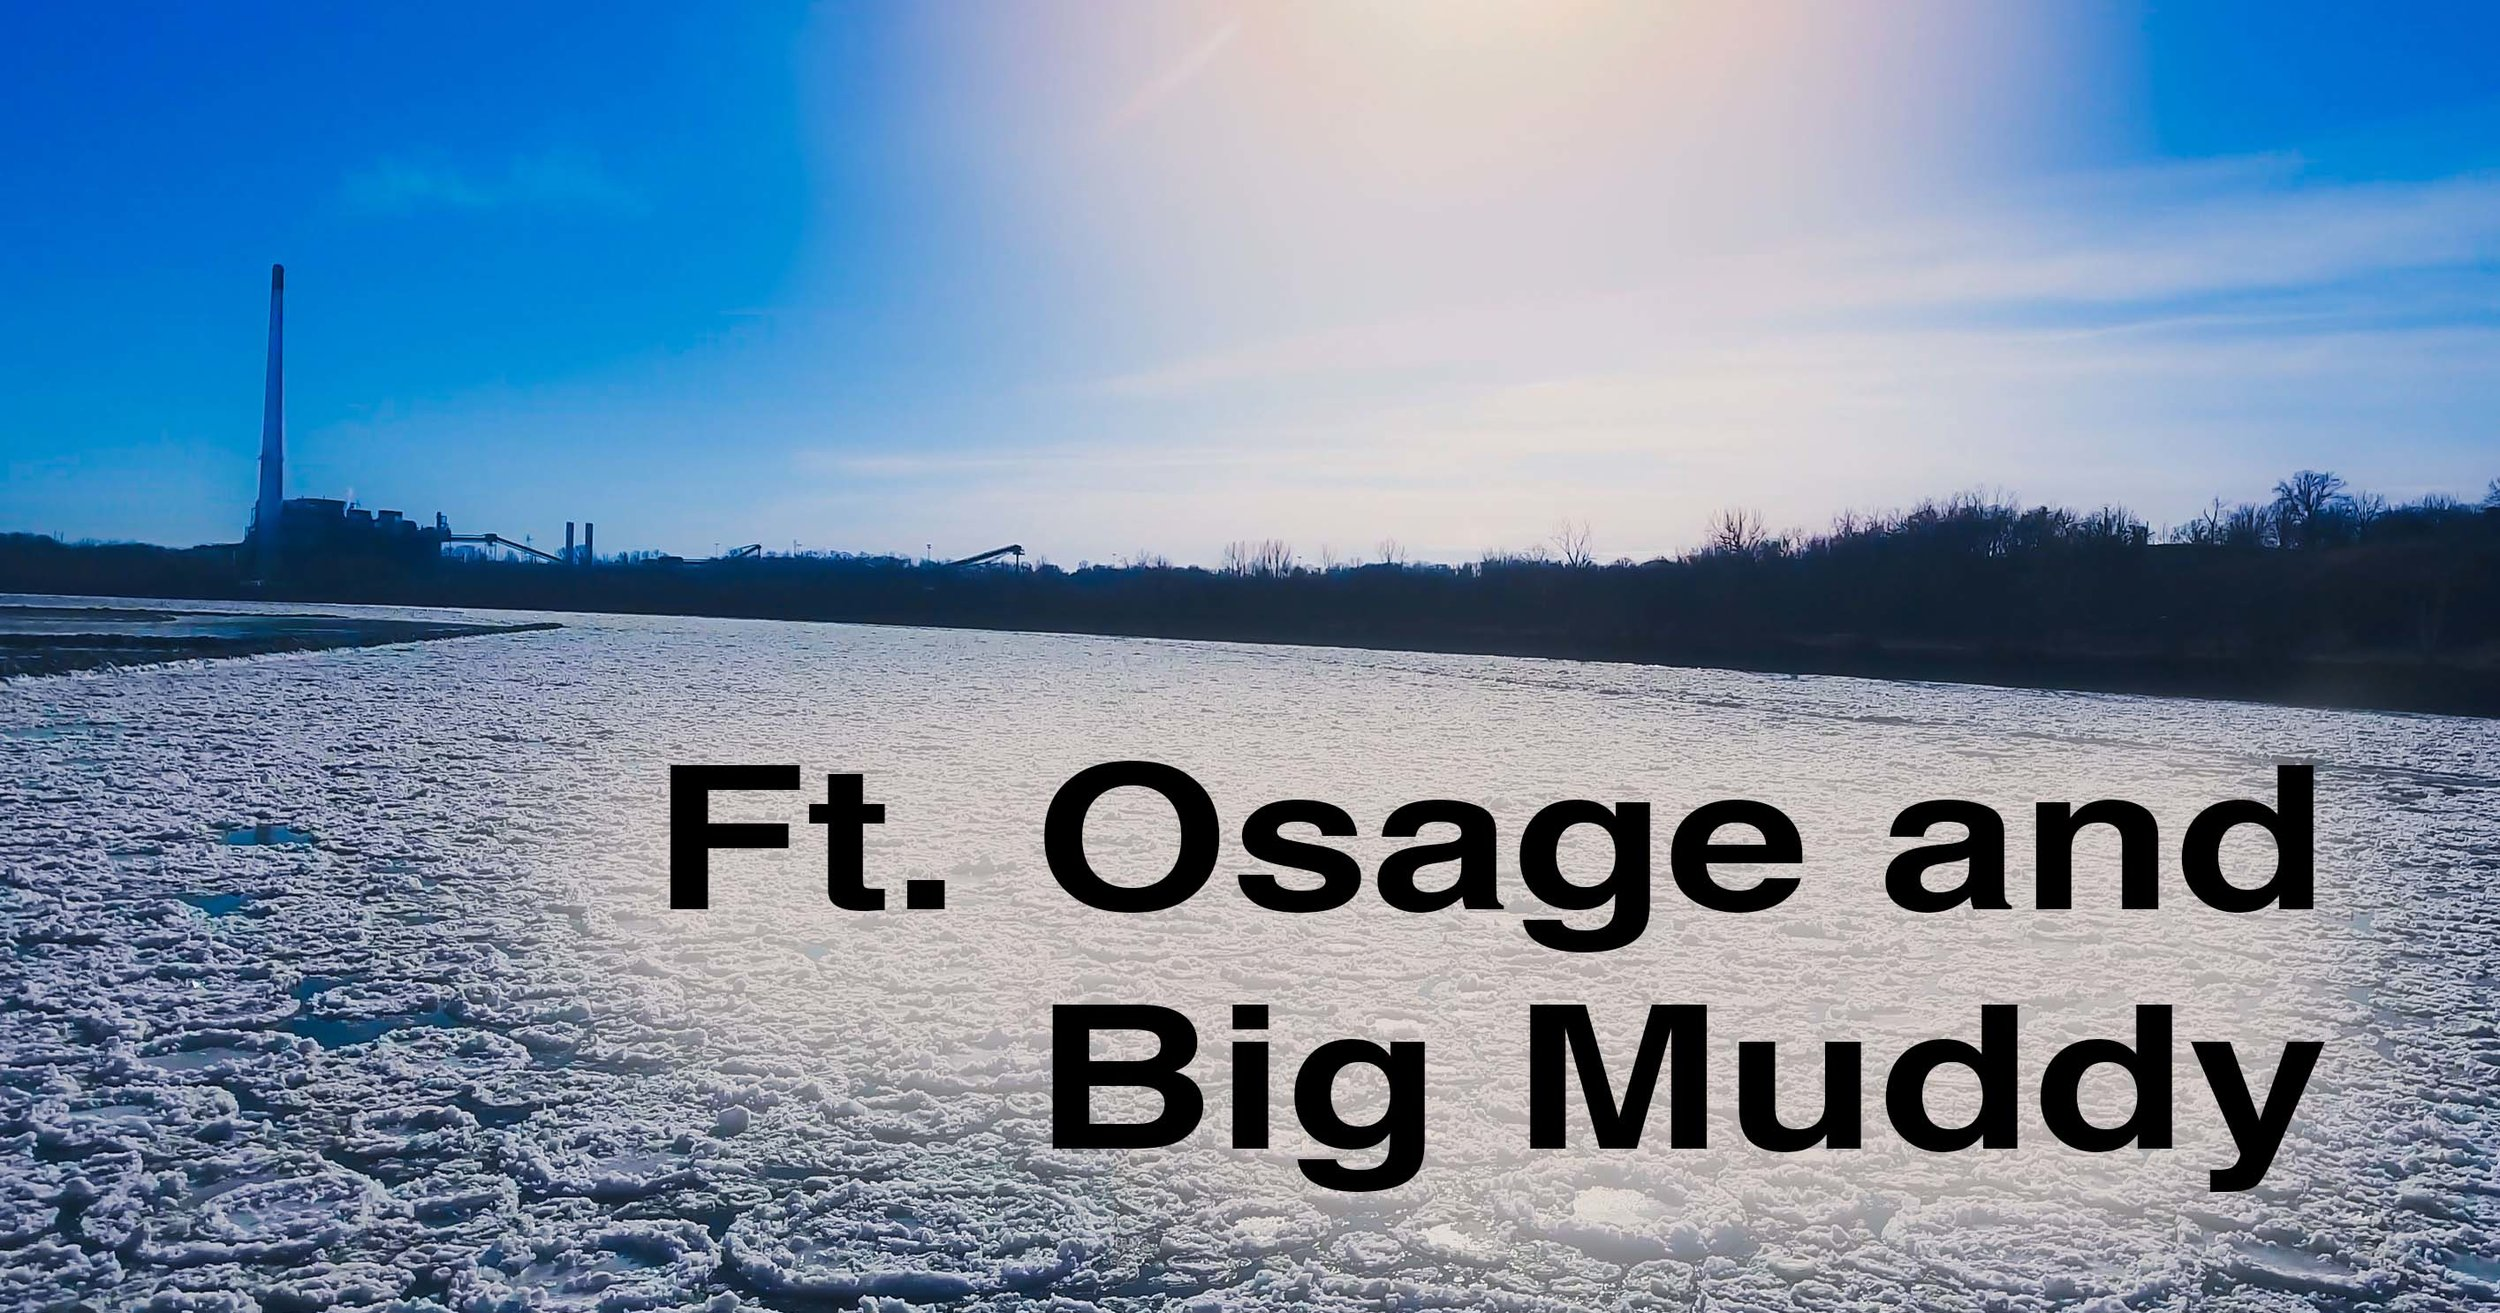 Ft Osage and Big Muddy